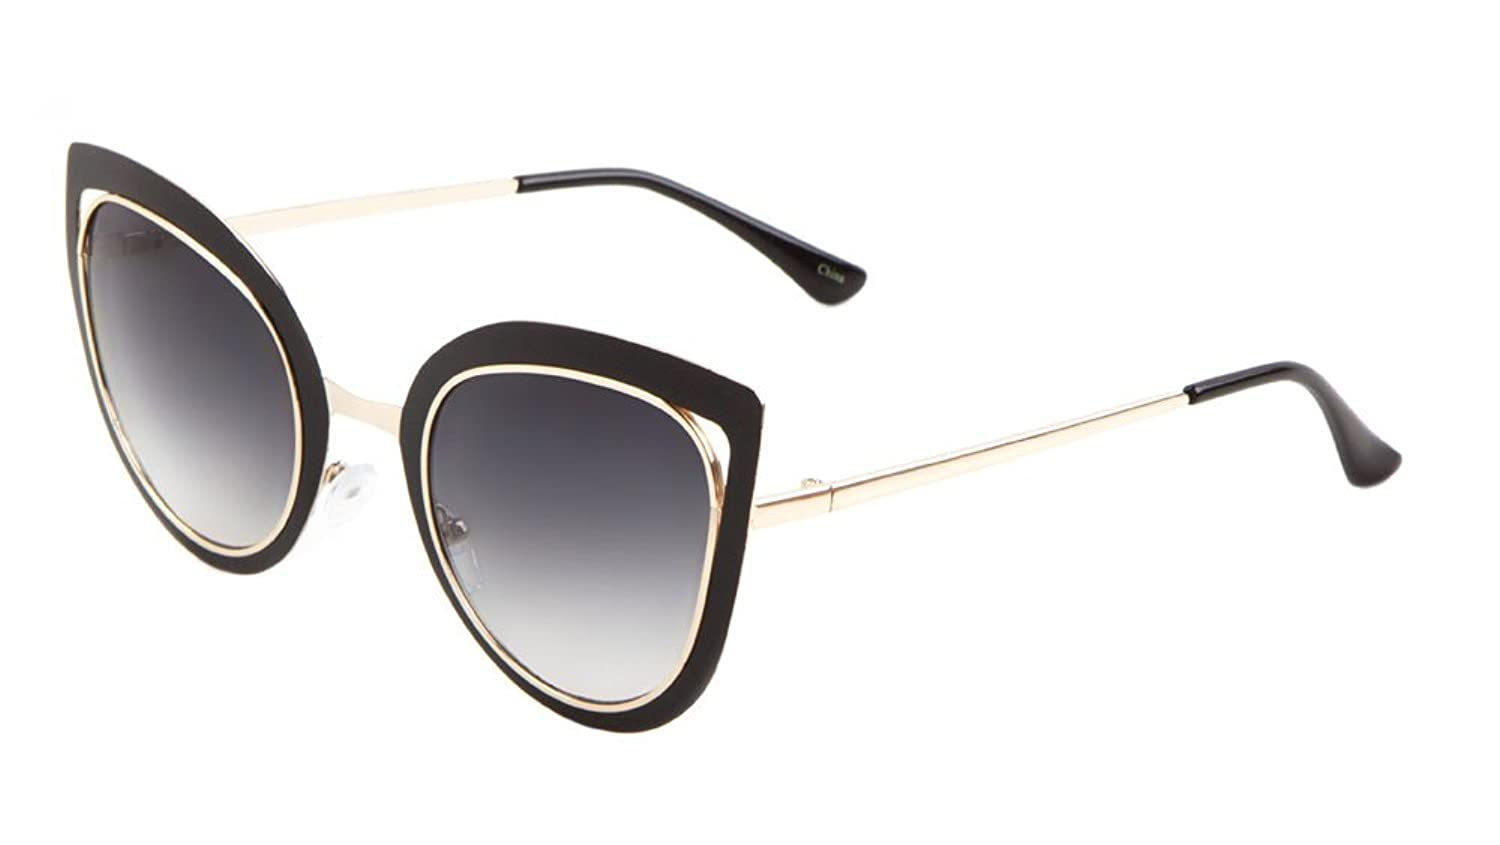 Sunglasses Luxe. Metal Cat Eye Sunglasses. (BLACK GOLD SMOKE)